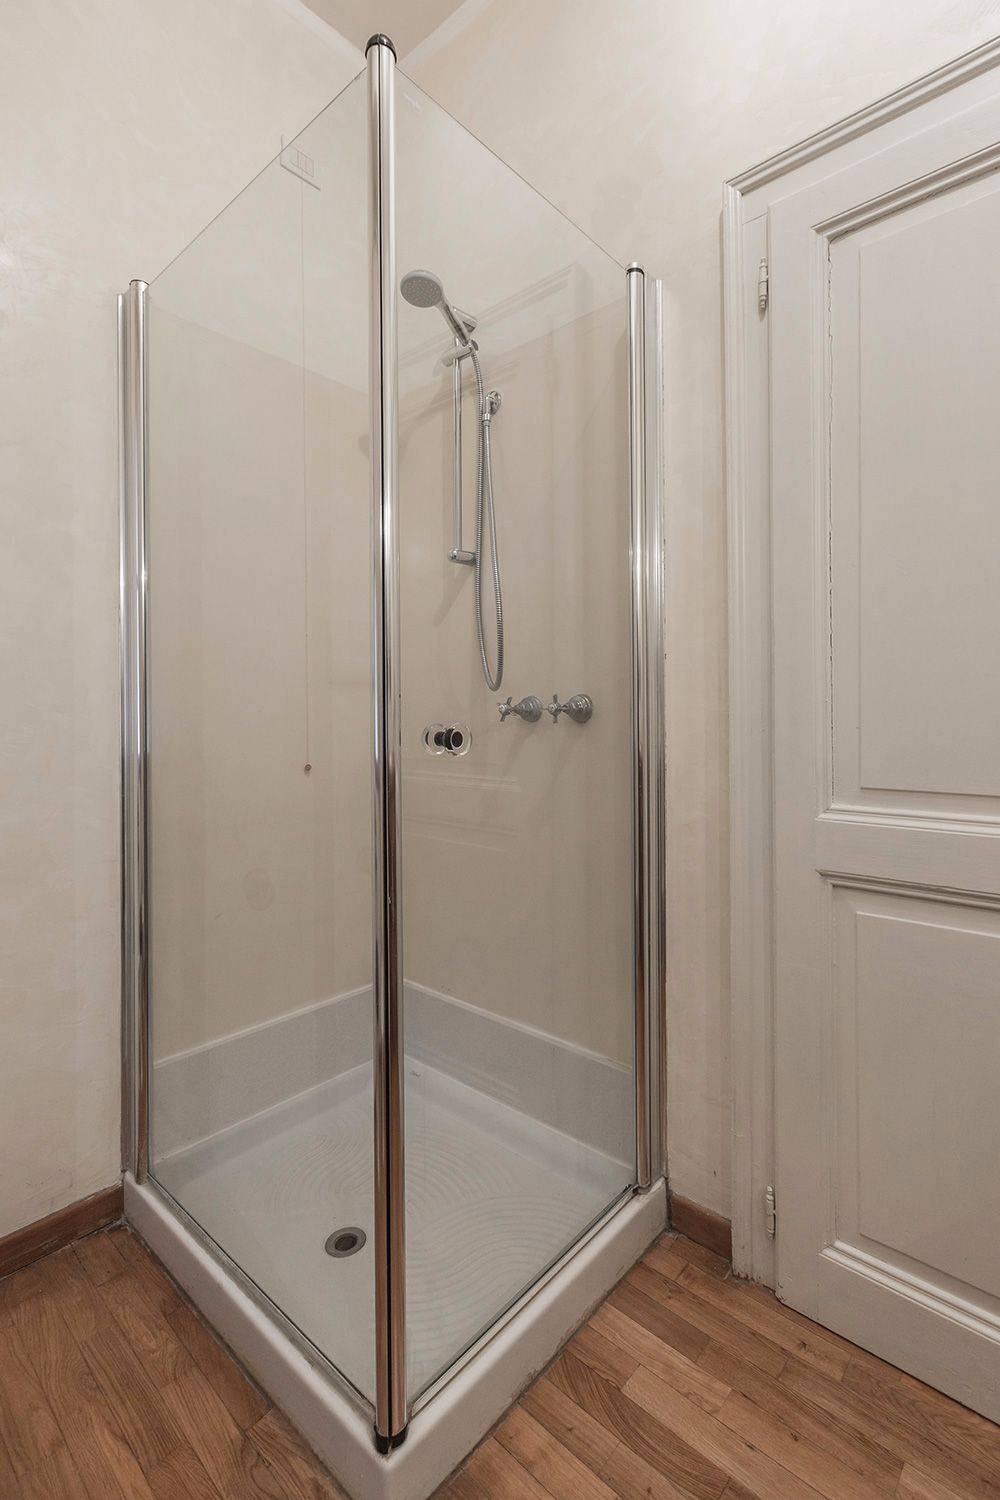 and a large shower cabin